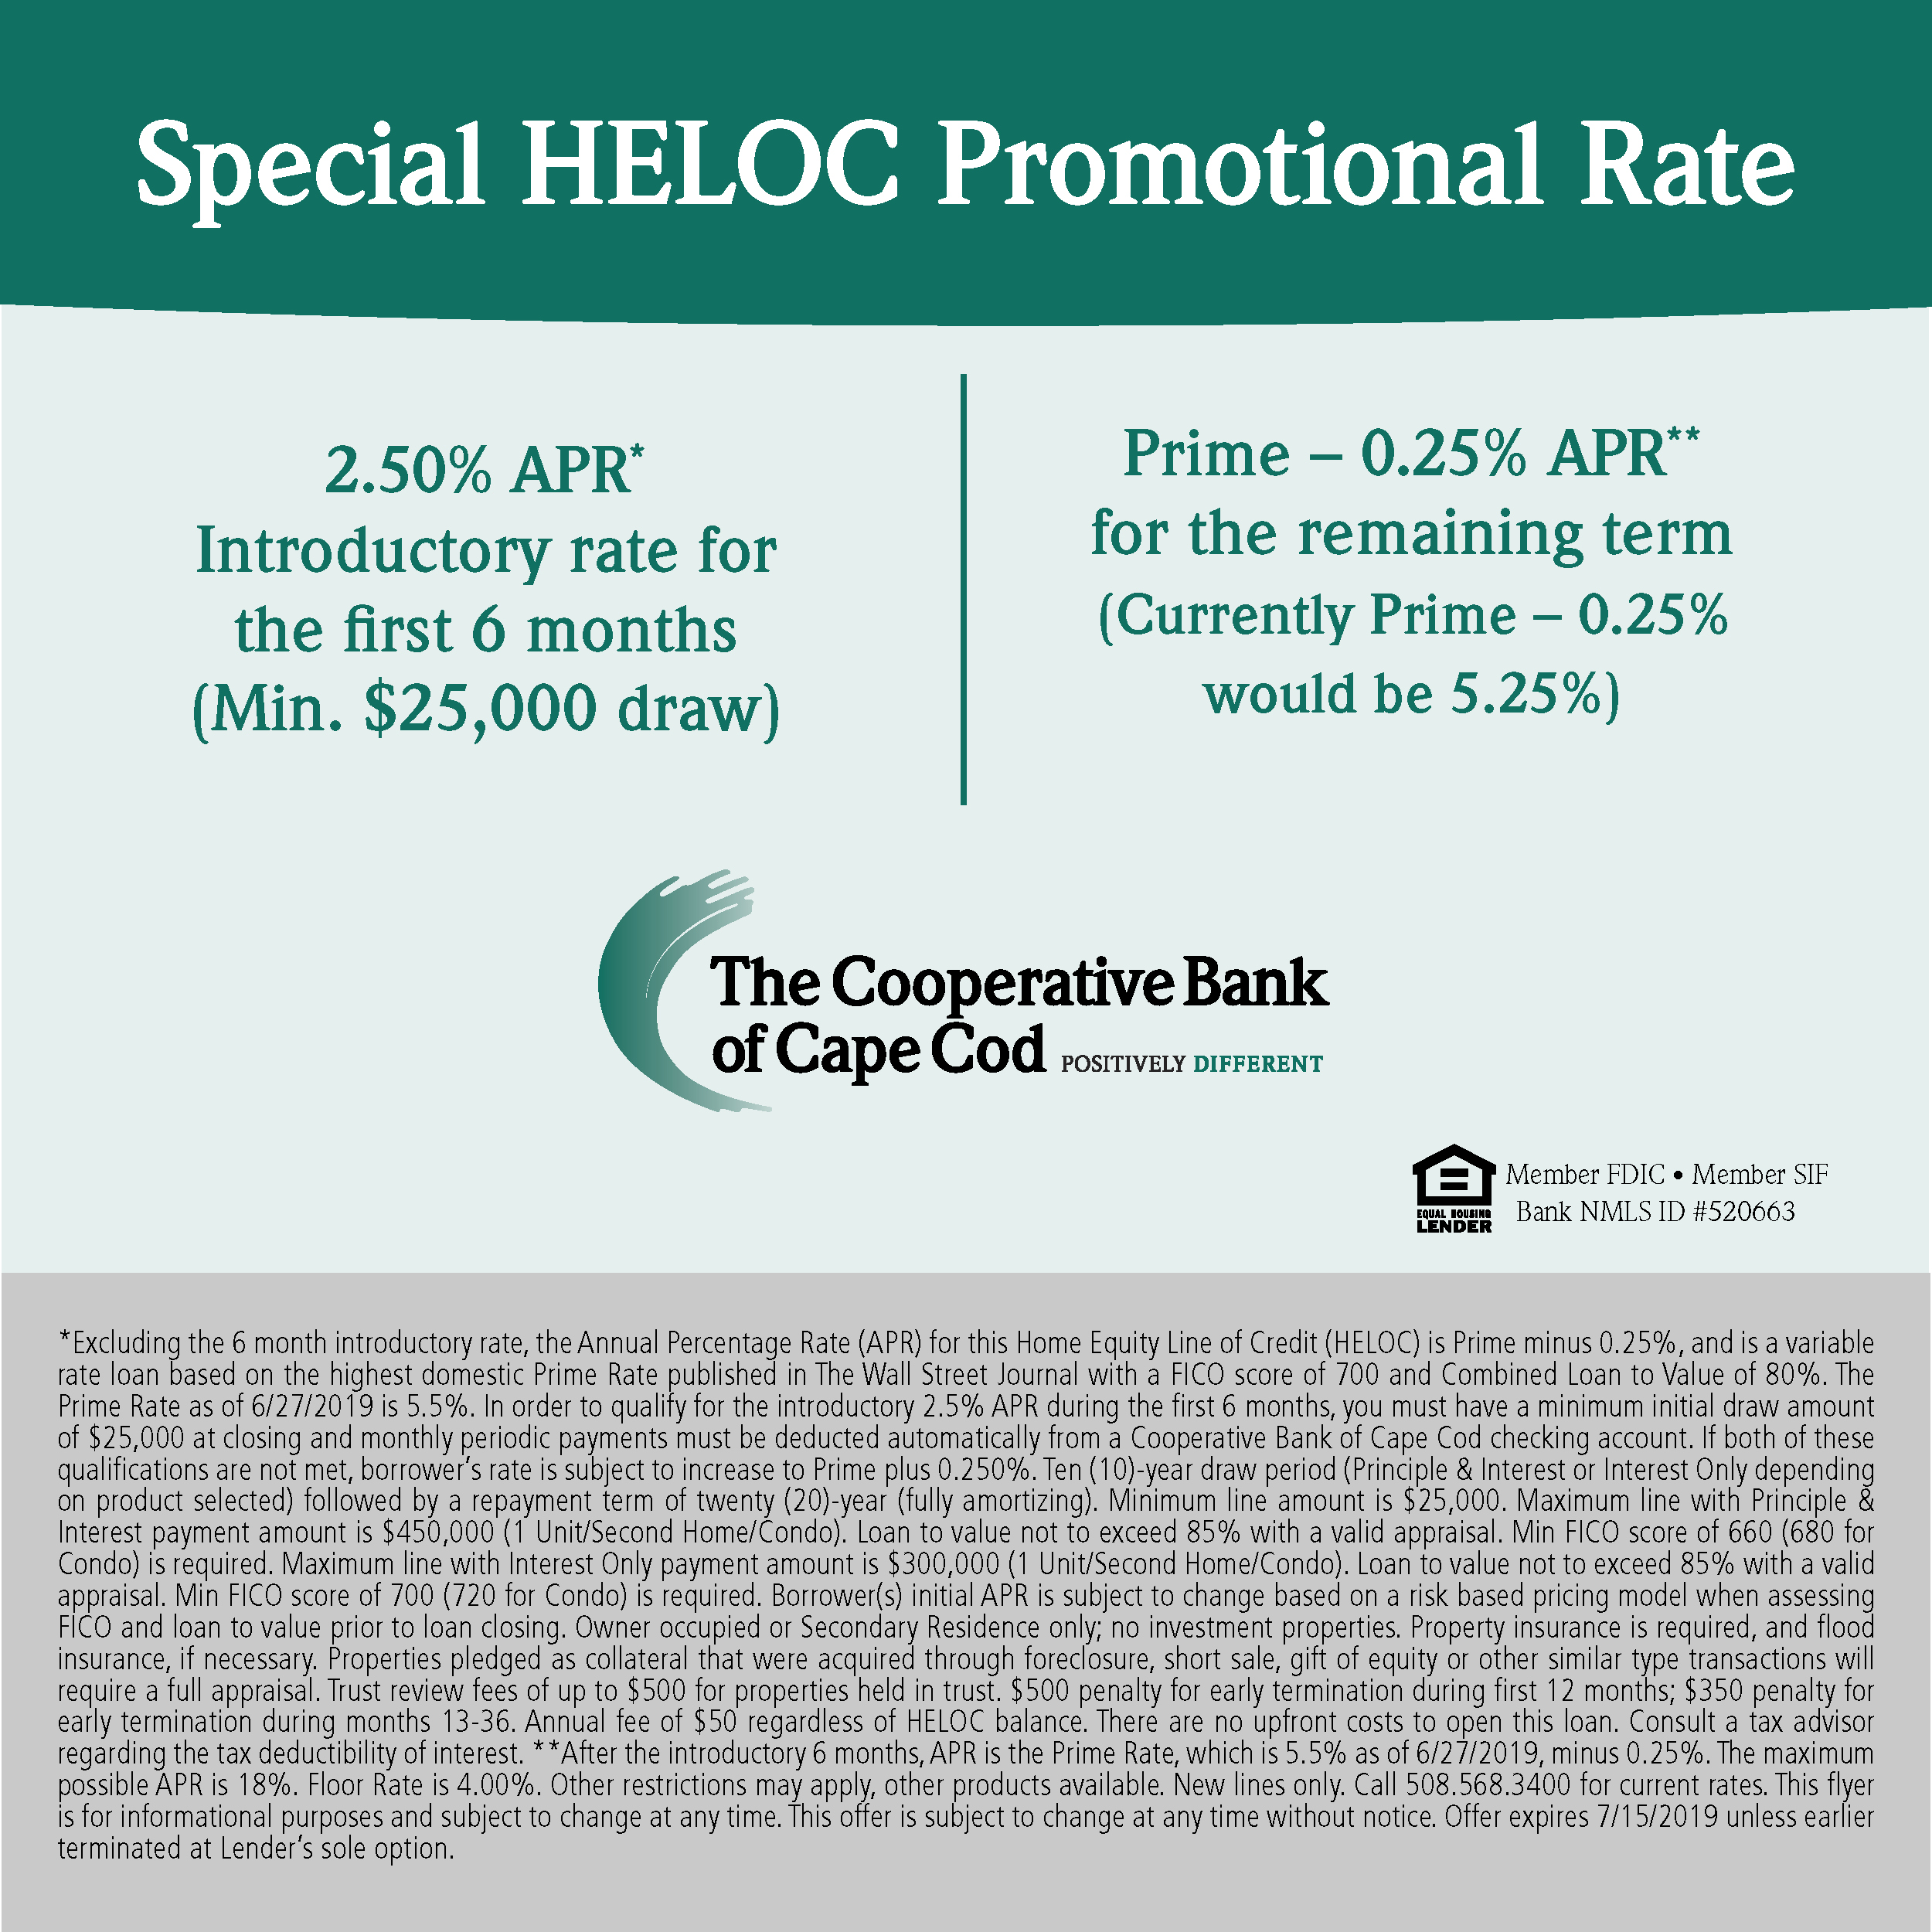 Special HELOC Promotional Rate